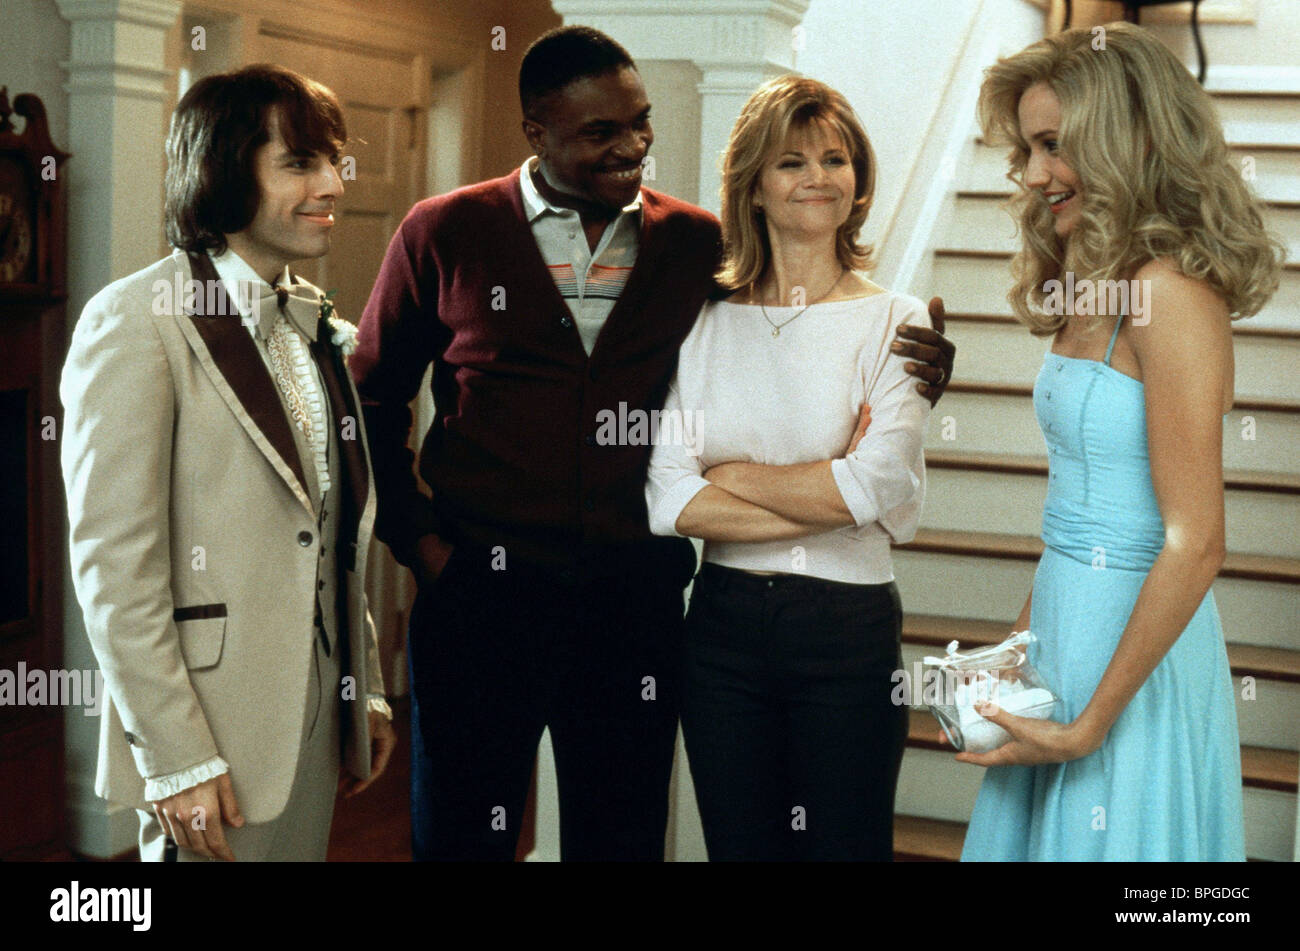 BEN STILLER, KEITH DAVID, MARKIE POST, CAMERON DIAZ, THERE'S SOMETHING ABOUT MARY, 1998 Stock Photo